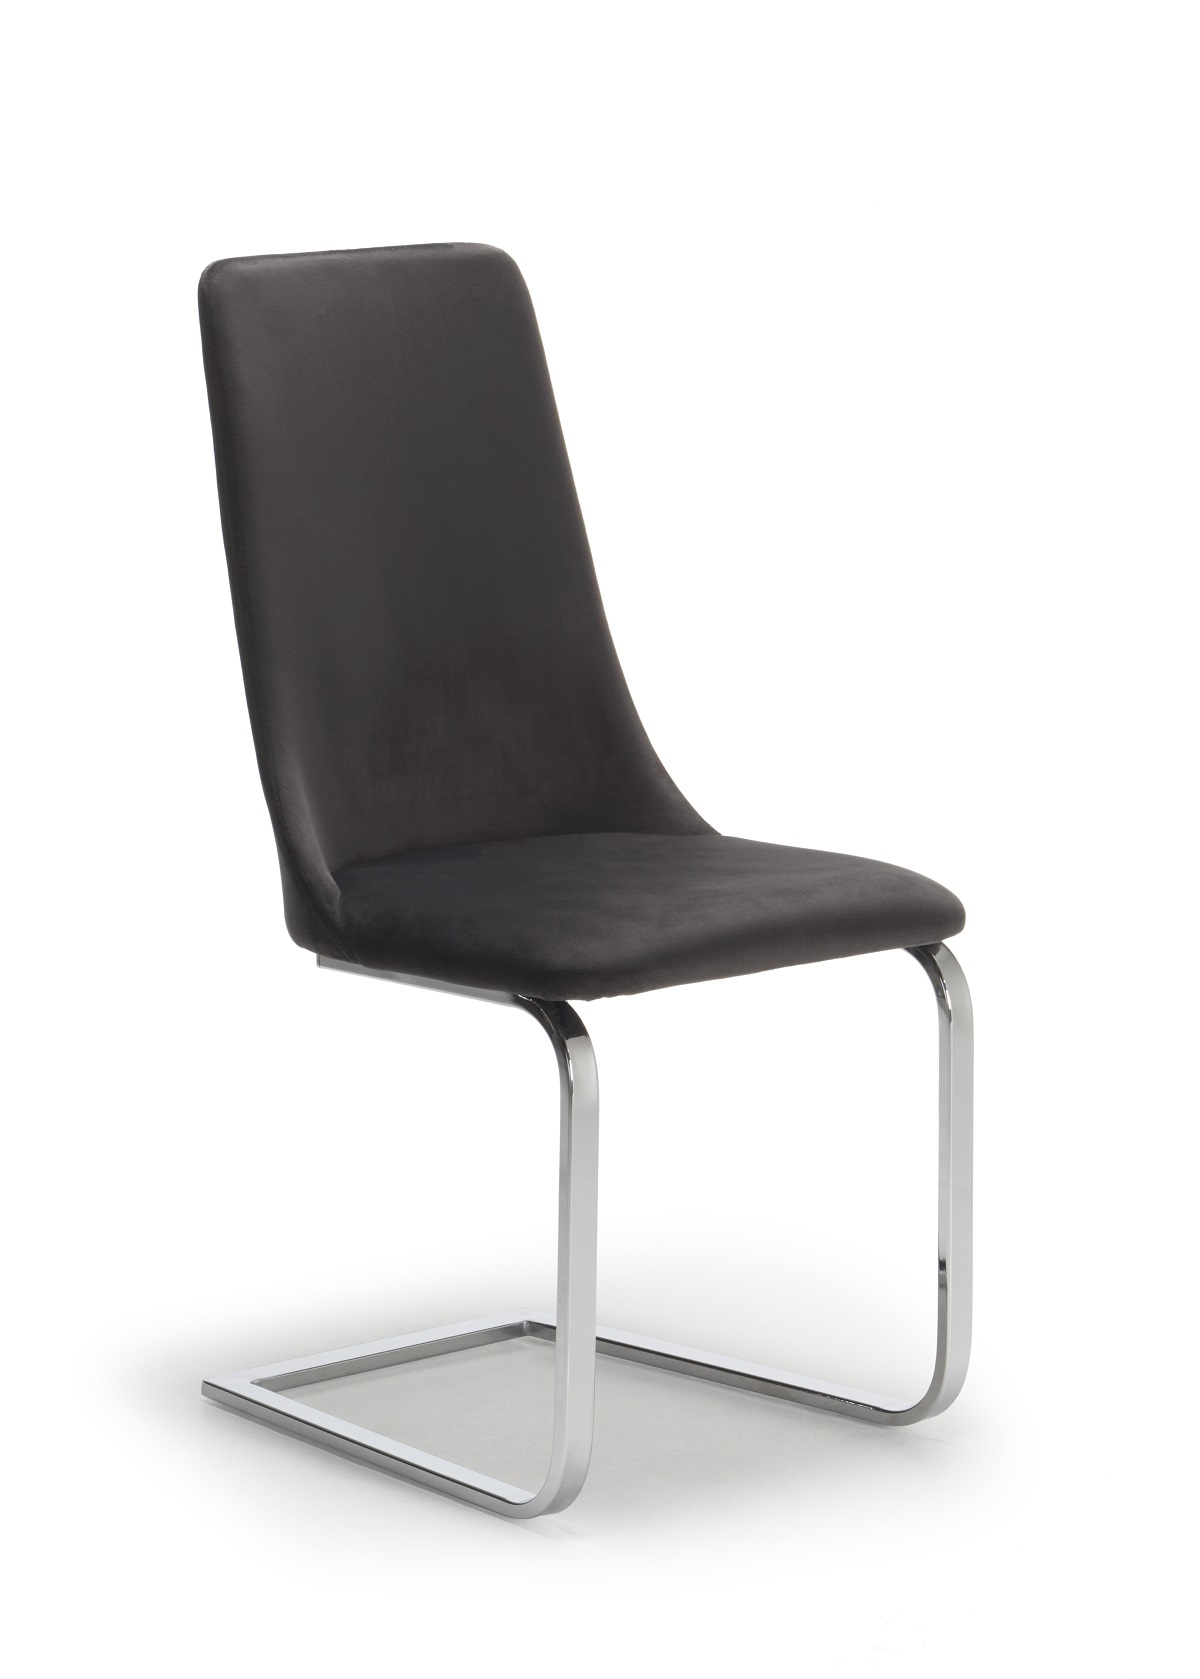 New Haven Sidechair - Anthracite